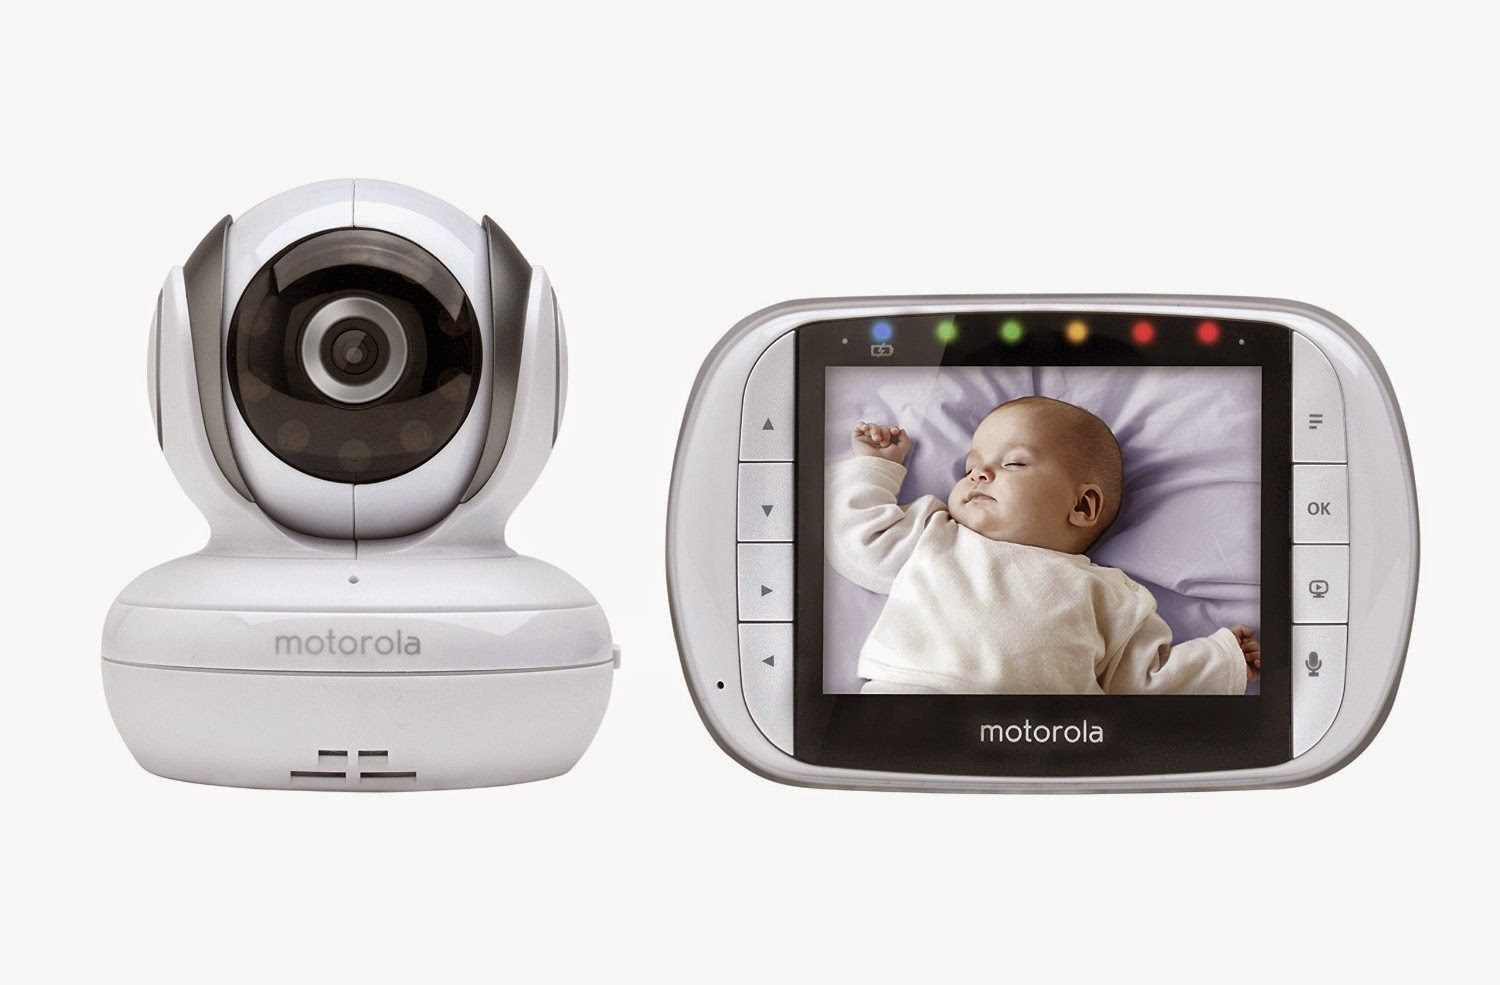 Check Out The Motorola Mbp36s Remote Wireless Video Baby